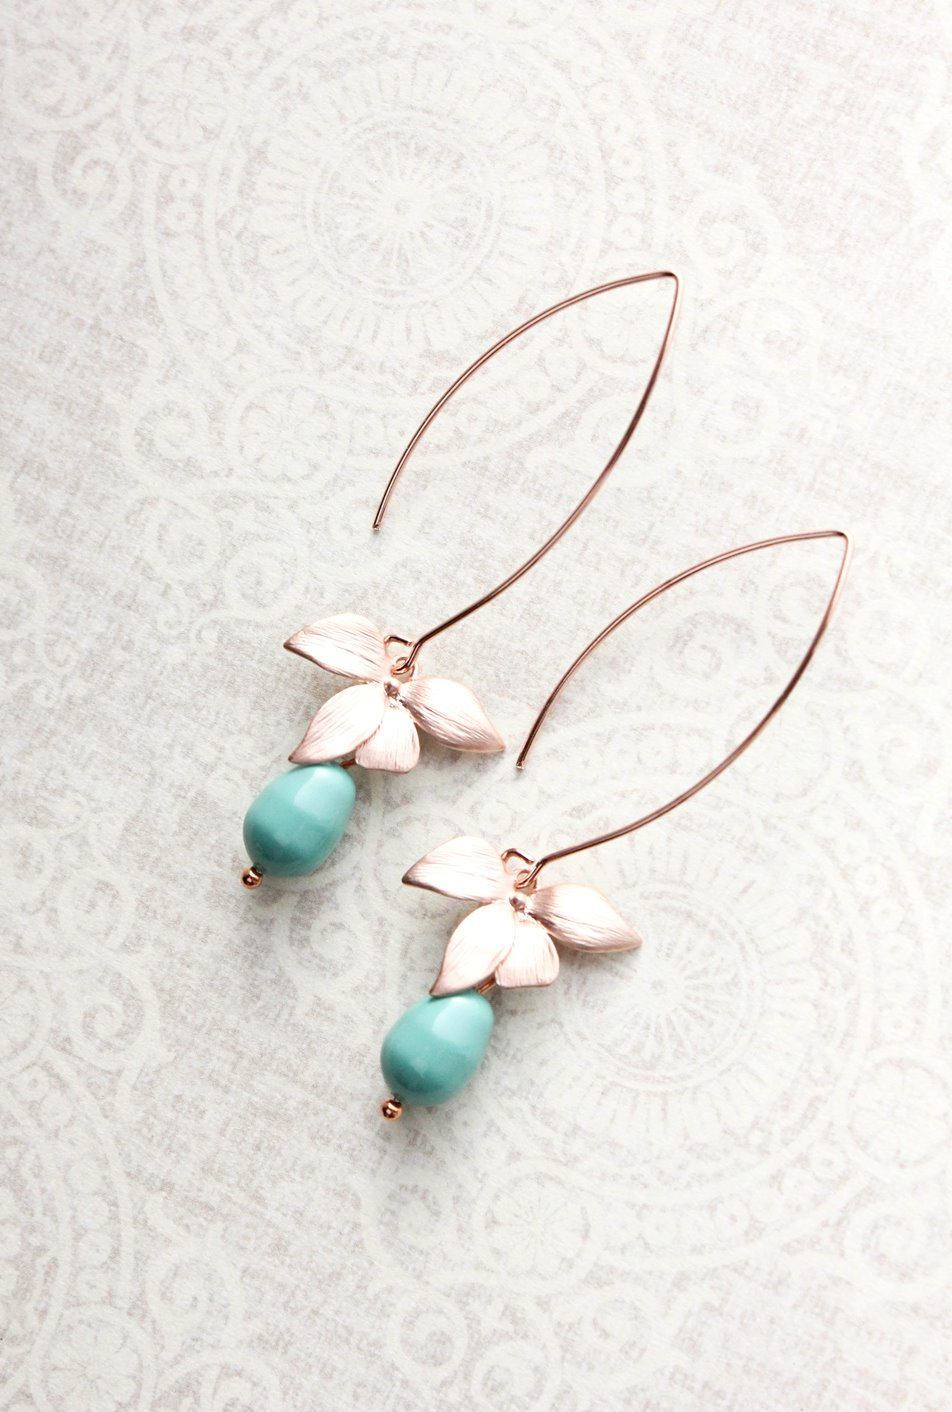 Rose Gold Orchid Earrings - Teal Pearl